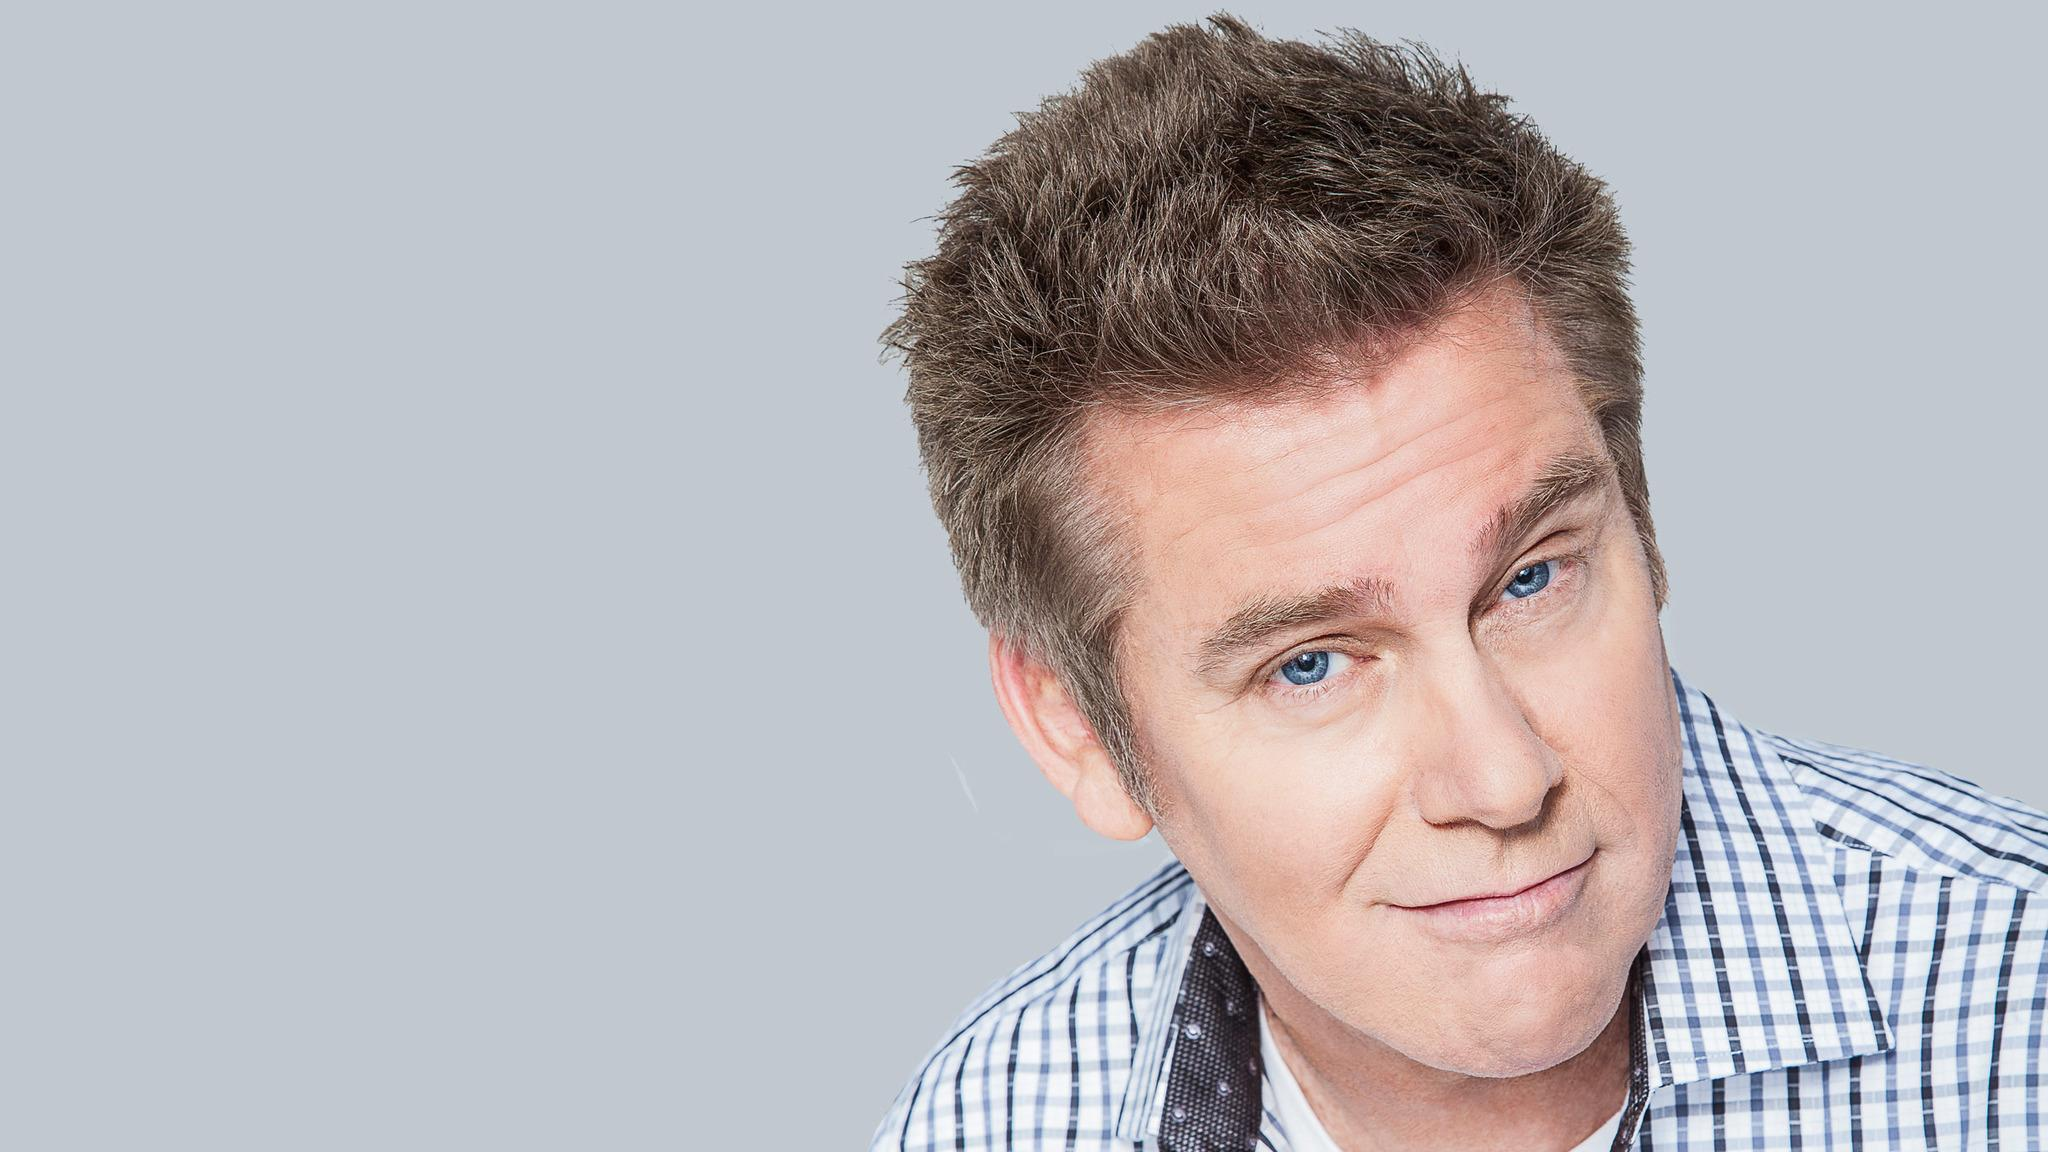 Brian Regan at Palace Theatre - Greensburg, PA 15601